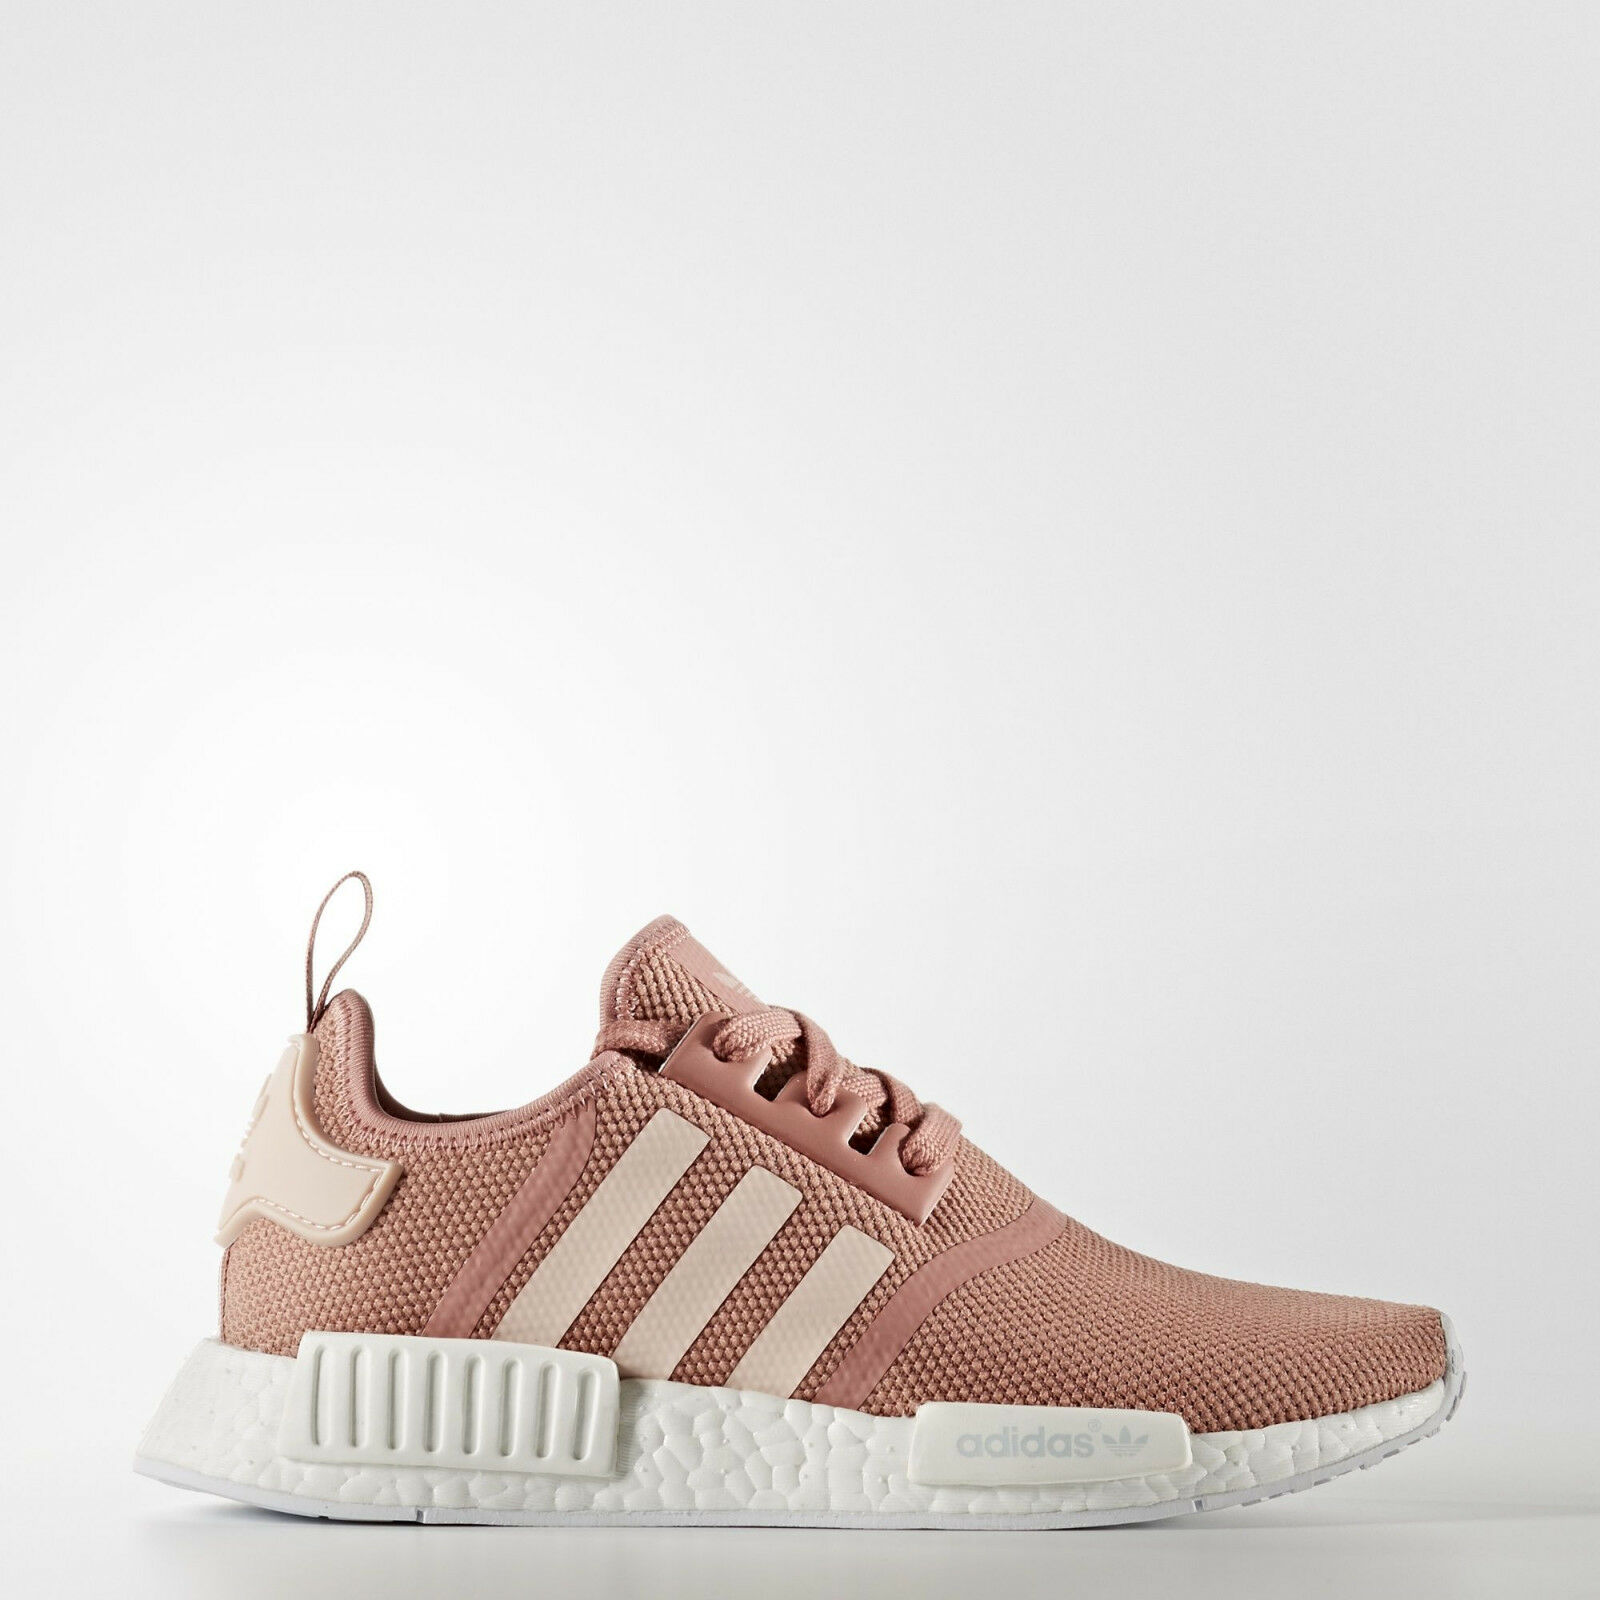 Adidas NMD R1 Raw Vapour Rosa S76006 Größes 5 to 10 Availables Rosa Salmon Nomad